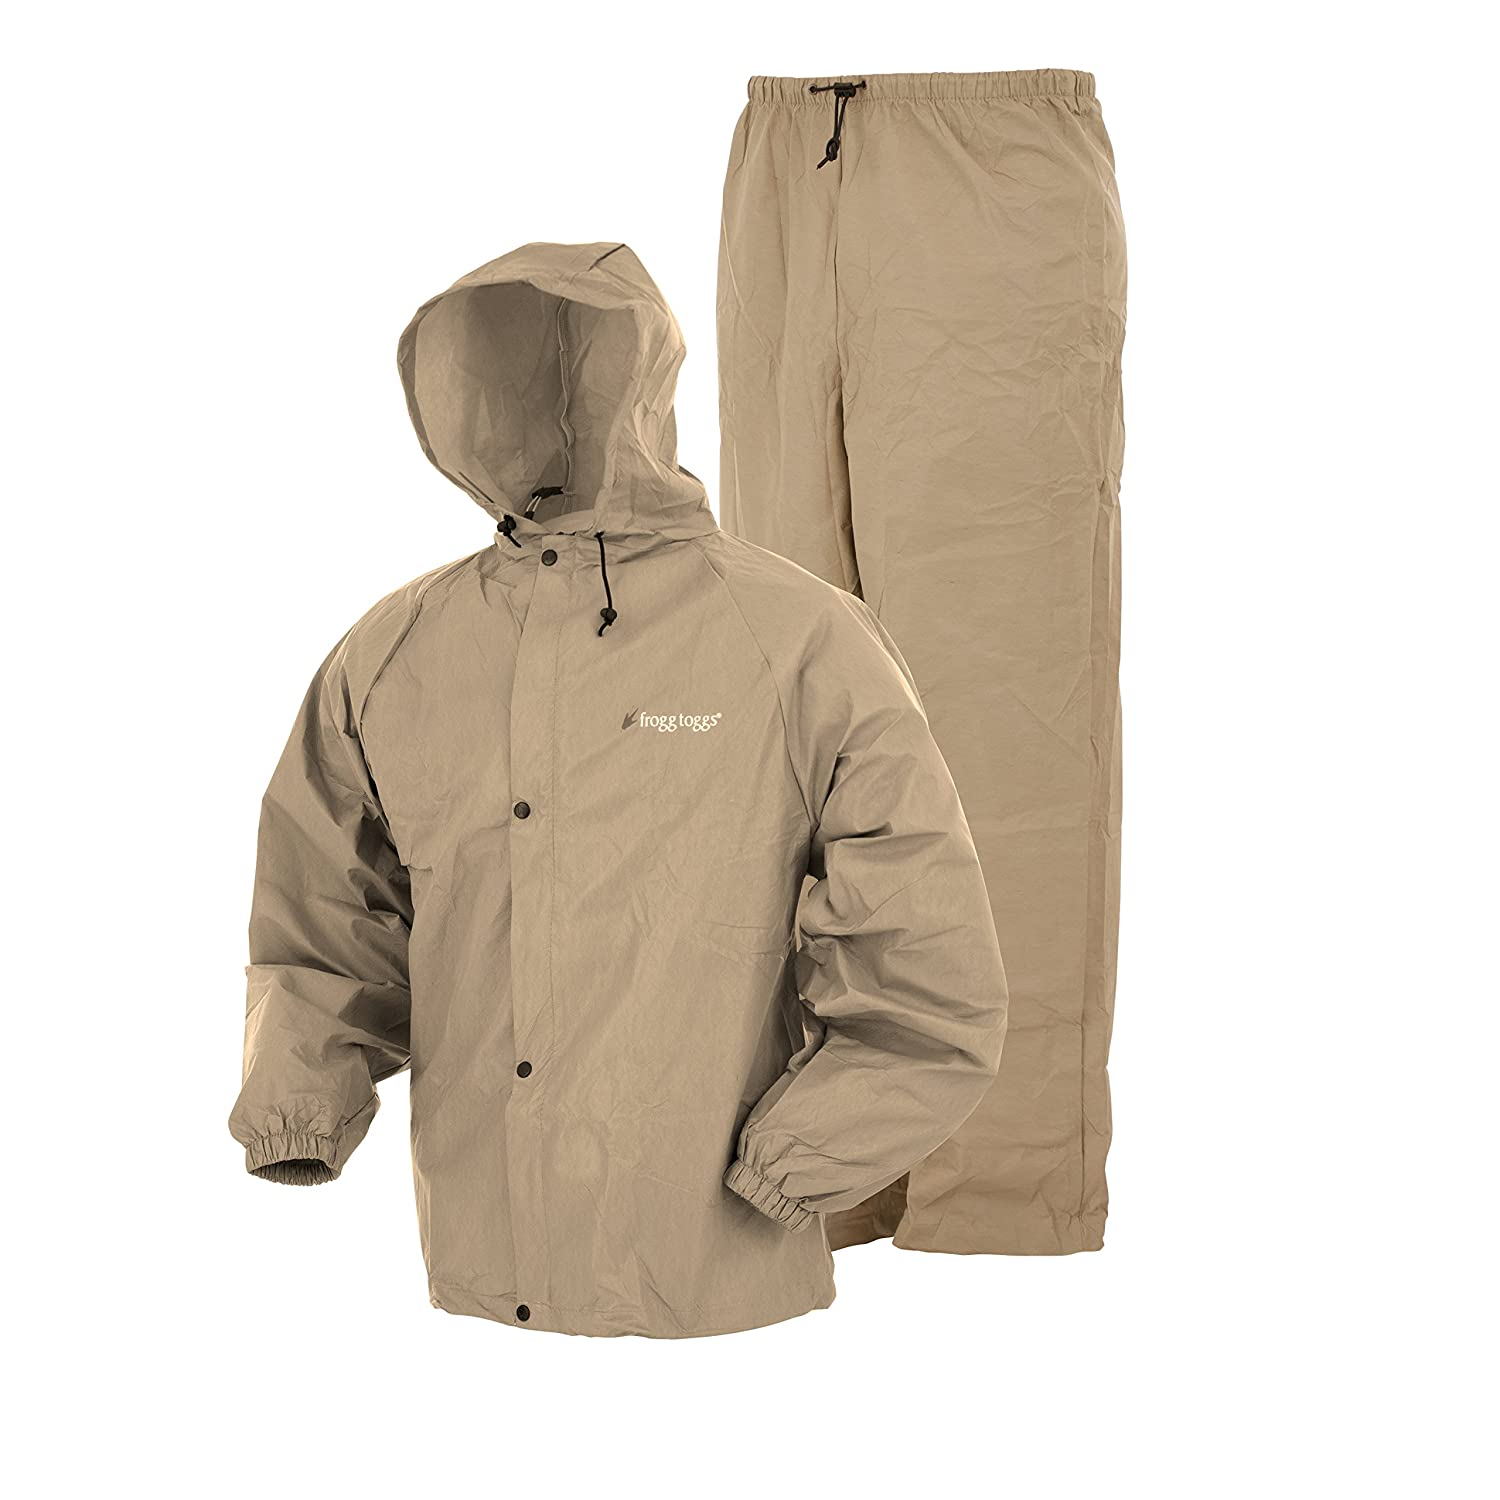 The Frogg Toggs Xtreme Lite Rain Jacket is an inexpensive and durable rain jacket with a fully adjustable hood, zippered side pockets, velcro wrist closures, and a cord-adjustable waist. This well-fitting jacket is a great waterproof and windproof layer with fully-taped seams to keep rain out.